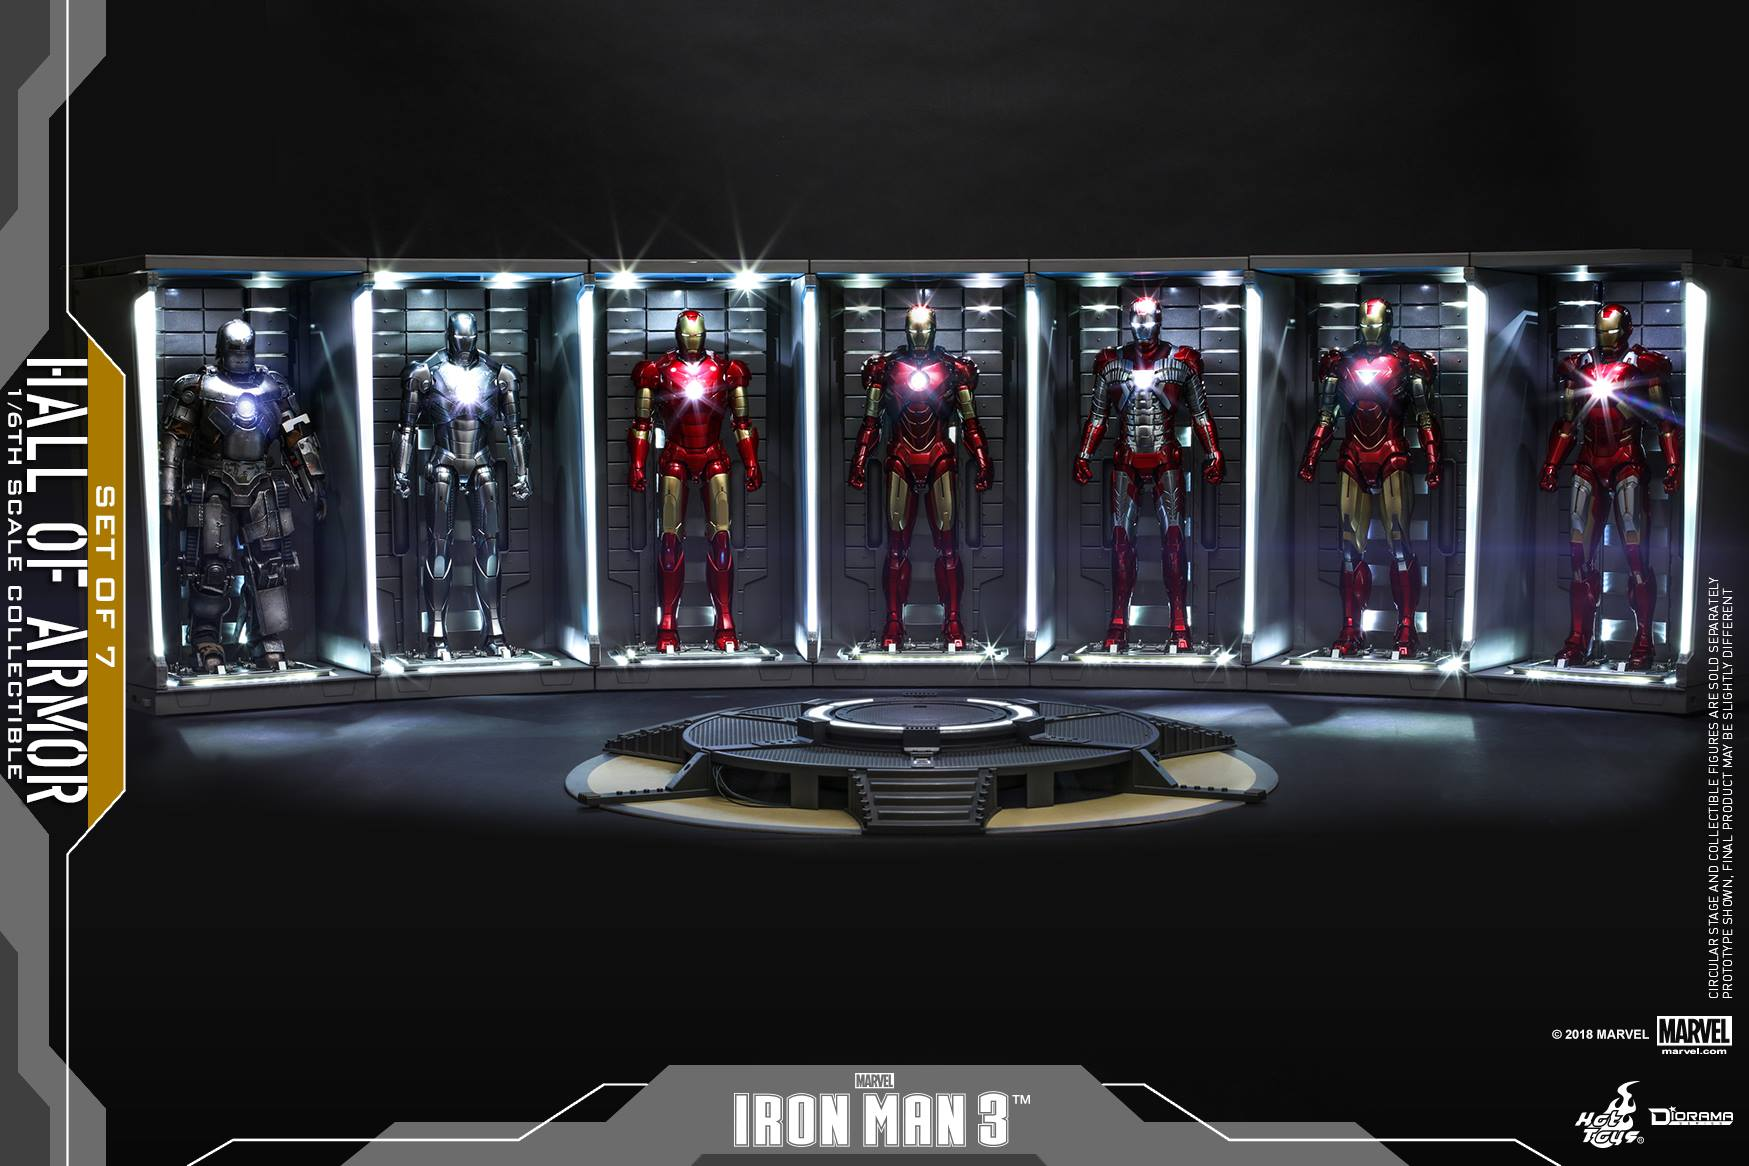 Hot Toys: 1/6 Iron Man 2 Hall Of Armor Koleksiyon Setini Duyurdu!